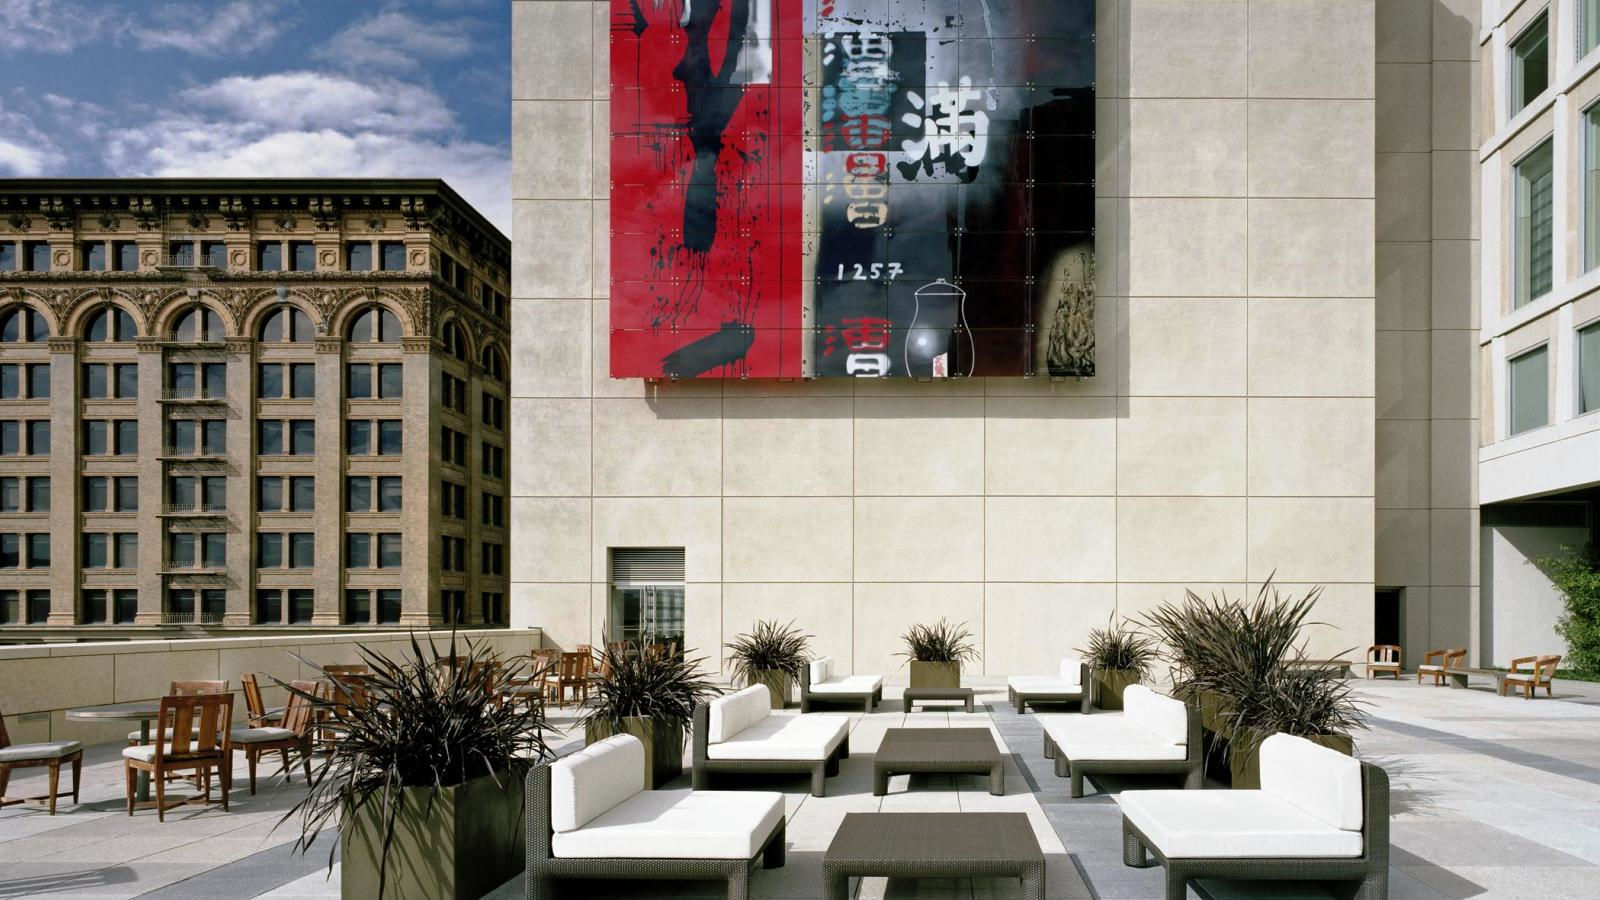 The St. Regis San Francisco - Yerba Buena Terrace